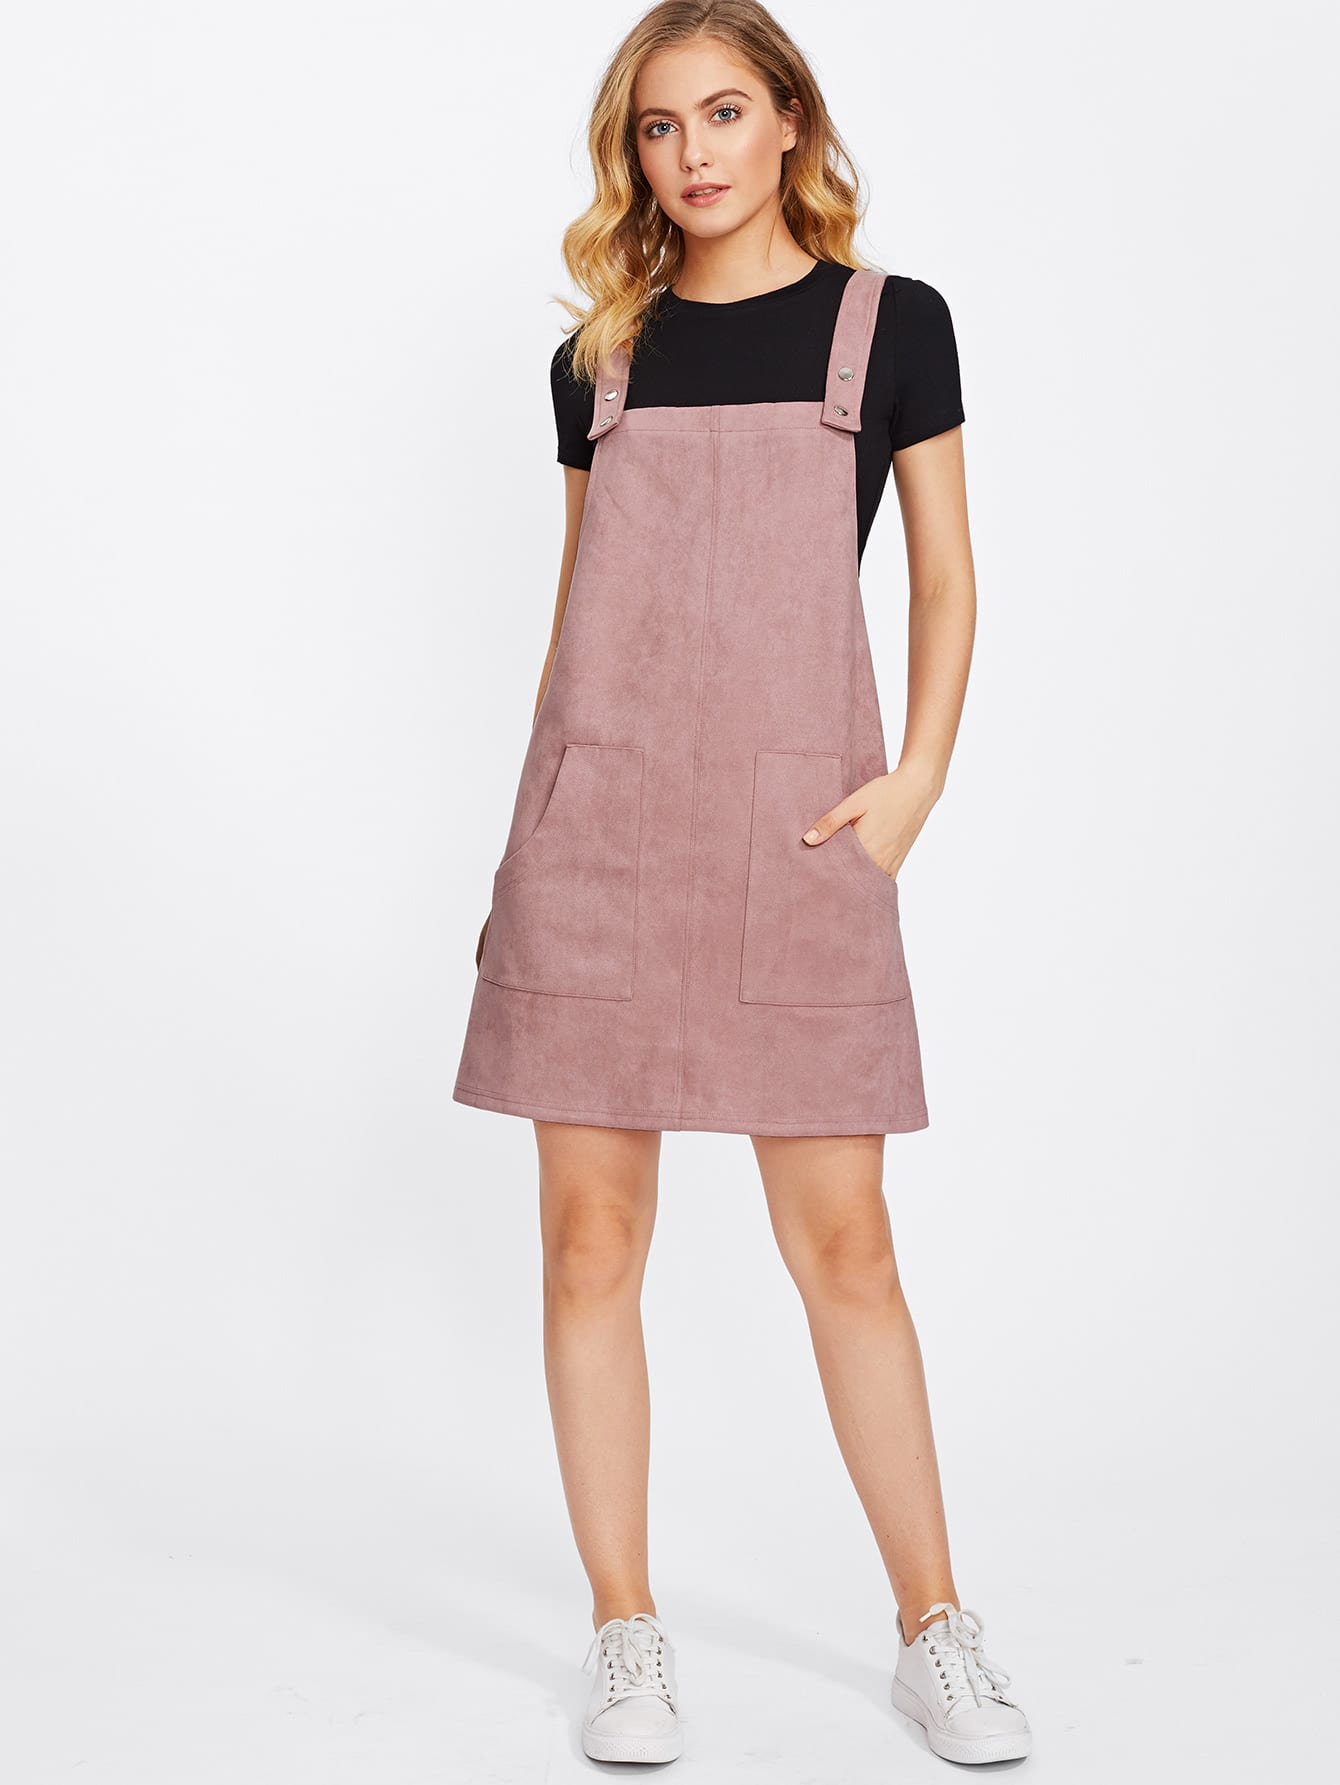 Patch Pocket Front Suede Overall Dress overall yumi overall